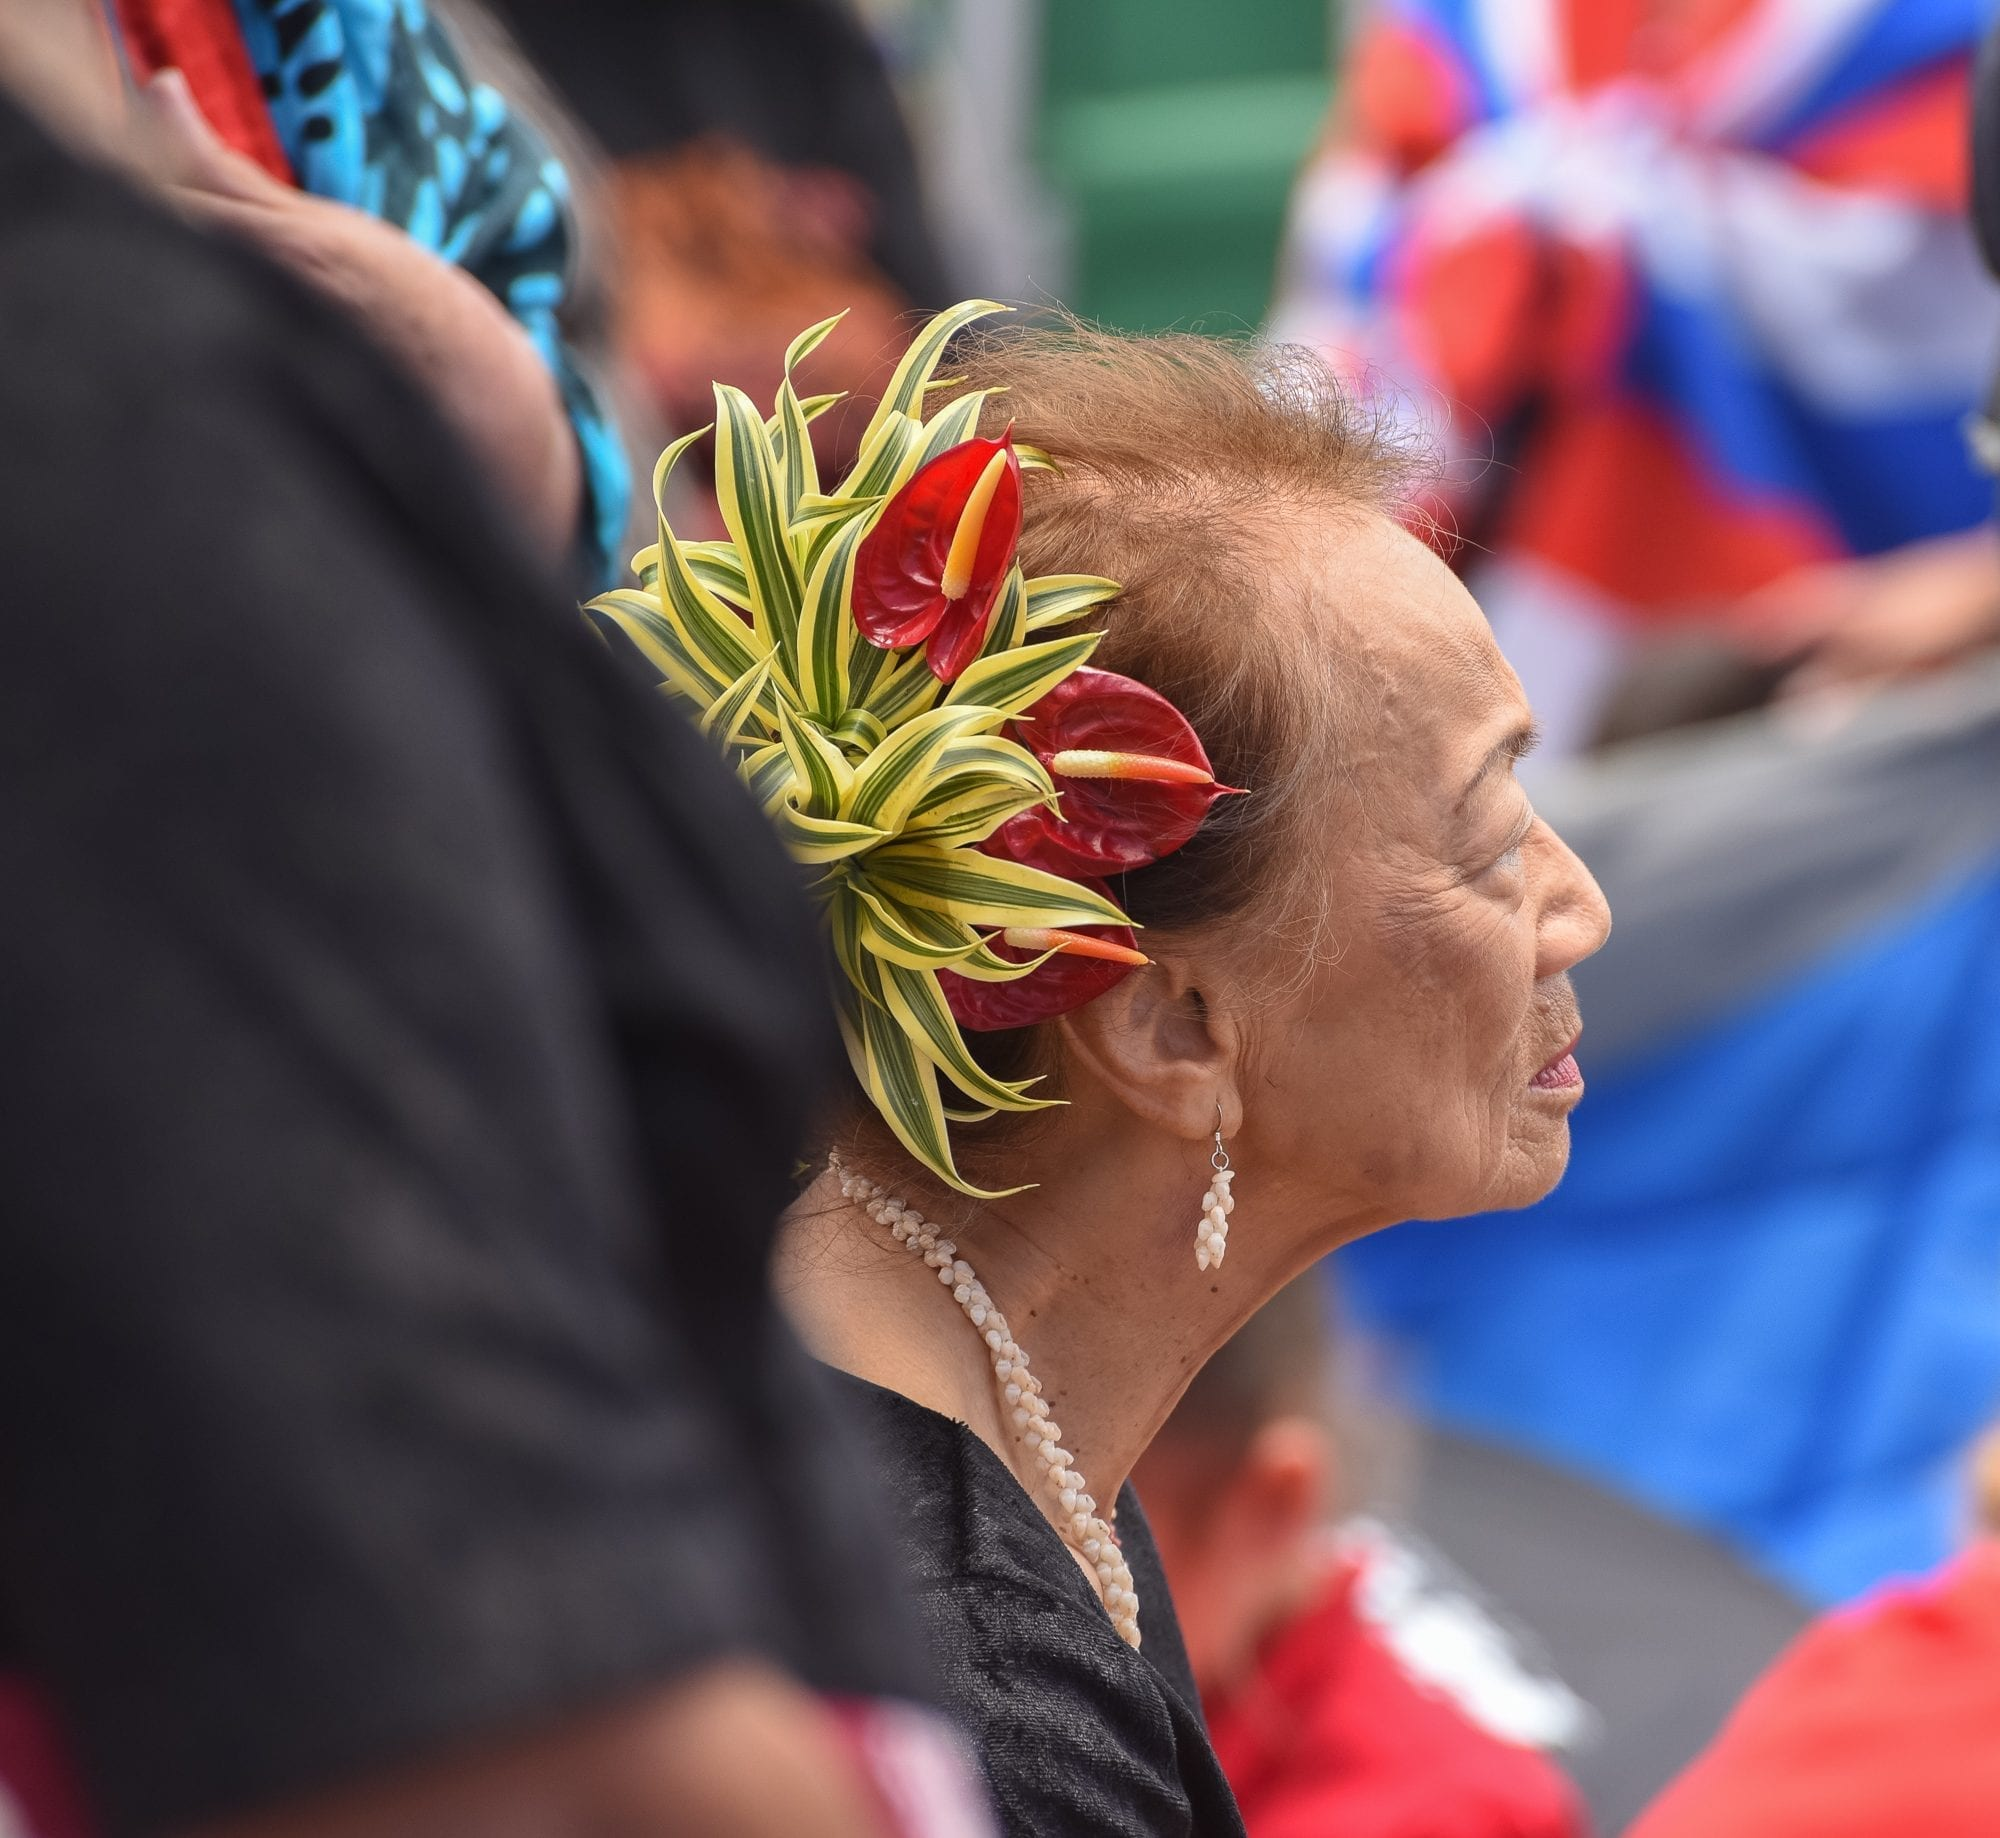 we can all be Hawaiian ally - image of a woman with a beautiful arrangement in her hair, staring off